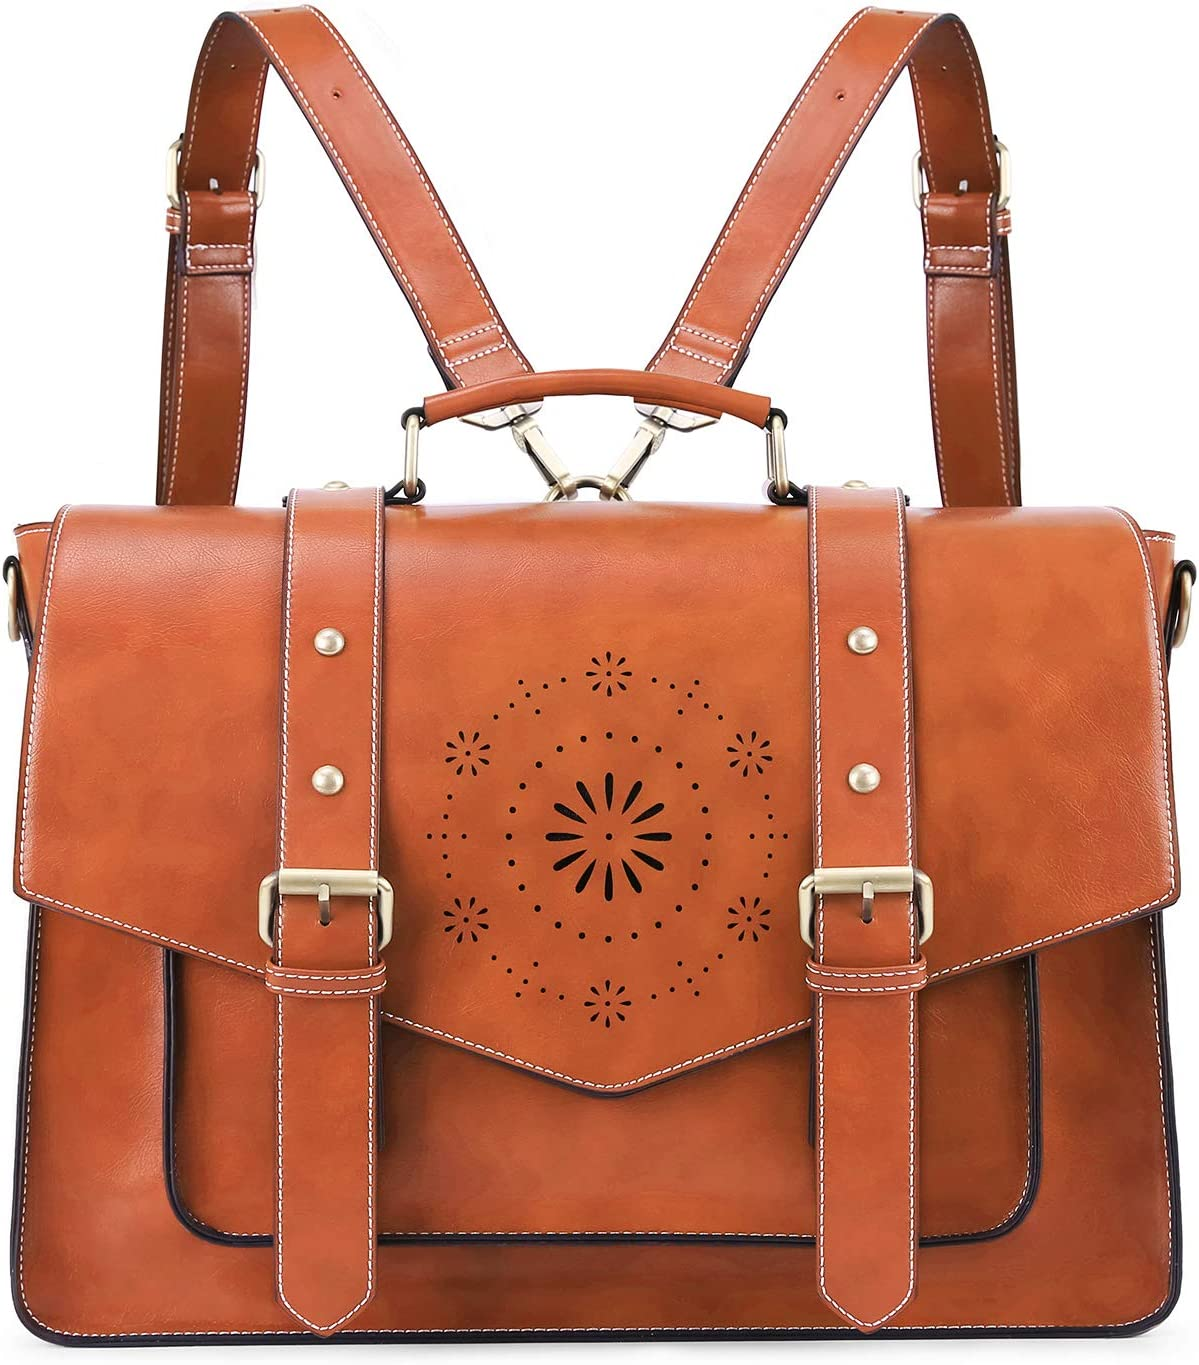 ECOSUSI Backpack for Women Briefcase Messenger Laptop Bag Vegan Leather Satchel Work Bags Fits 15.6 inch Laptops, Brown